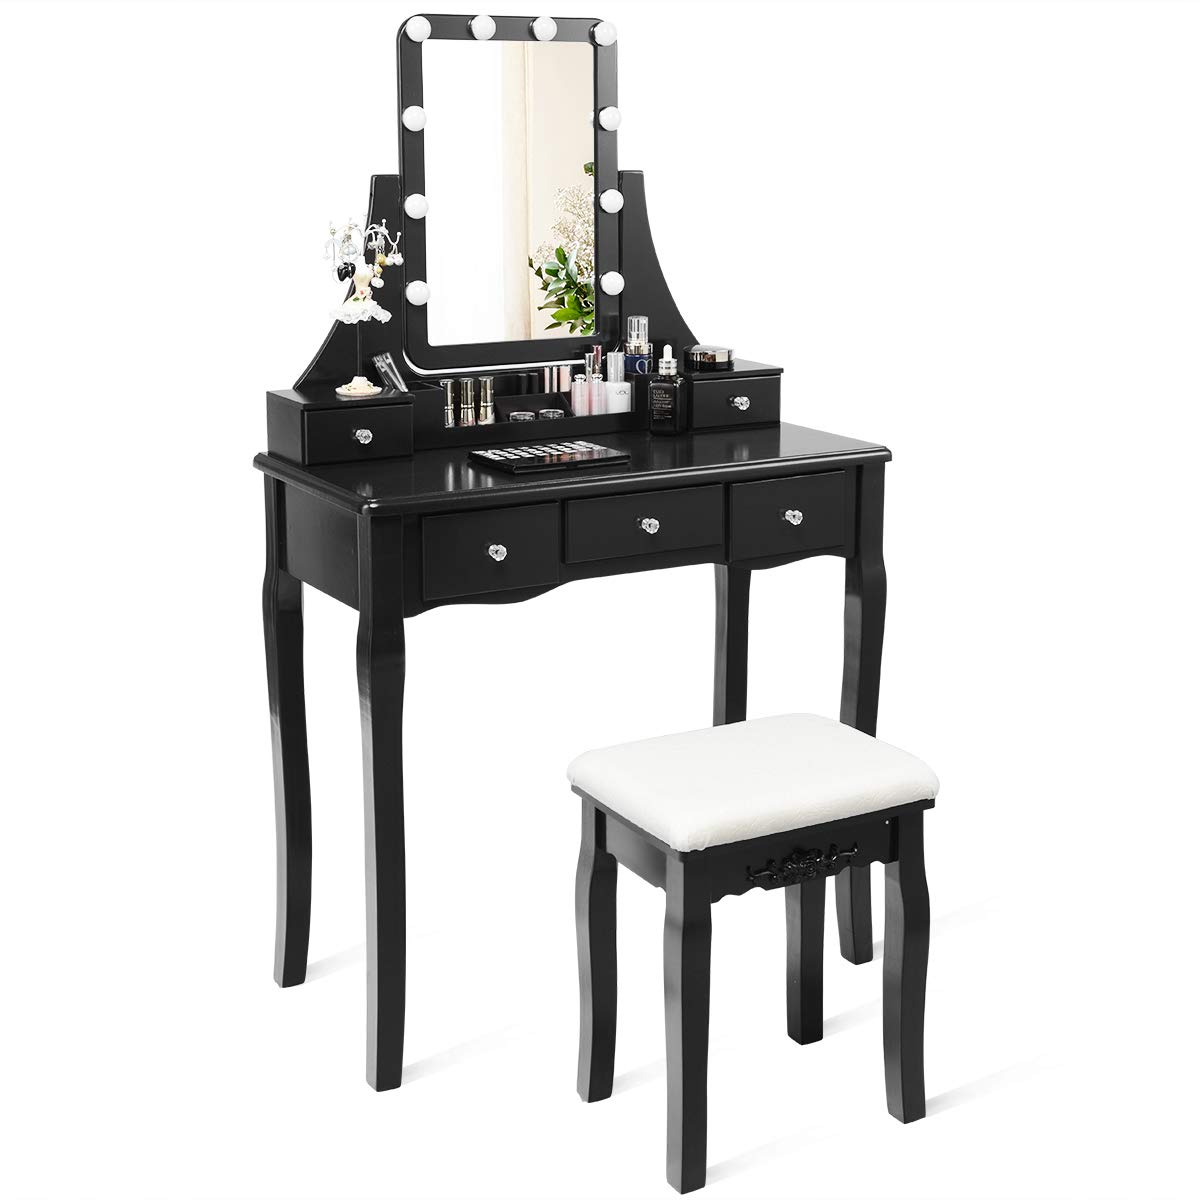 CHARMAID Vanity Set with Lighted Mirror, 10 Dimmable Light Bulbs Vanity Dressing Table, 5 Drawer with 2 Dividers Removable Organizer, Makeup Table and Cushioned Stool Set with 10 LED Bulbs (Black) by CHARMAID